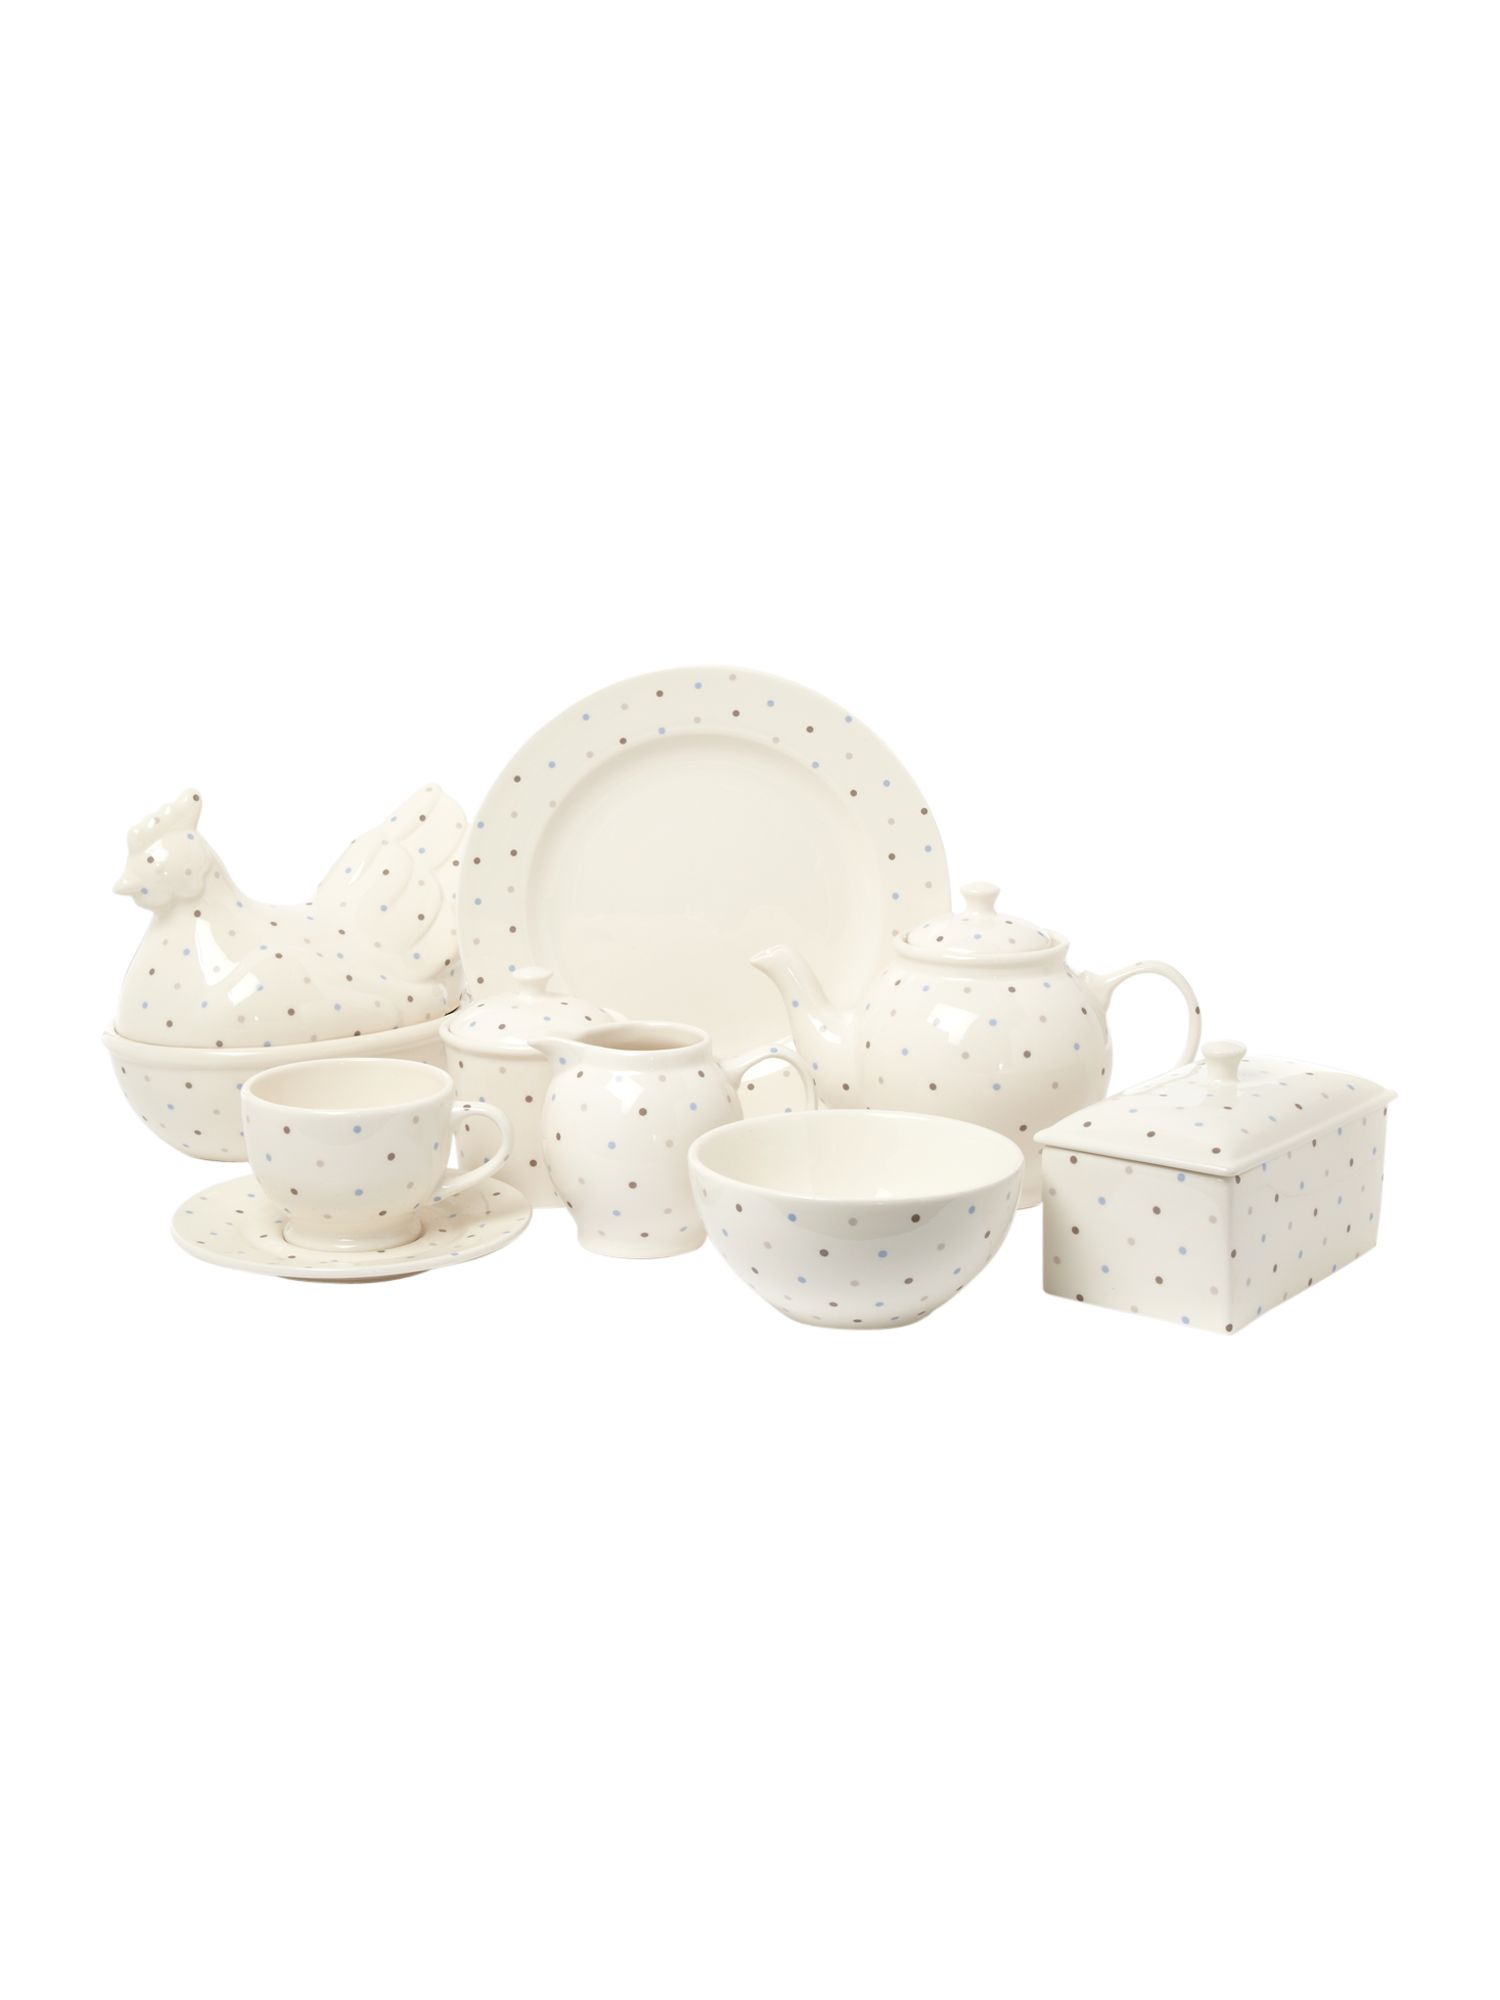 Homespun dotty kitchen range